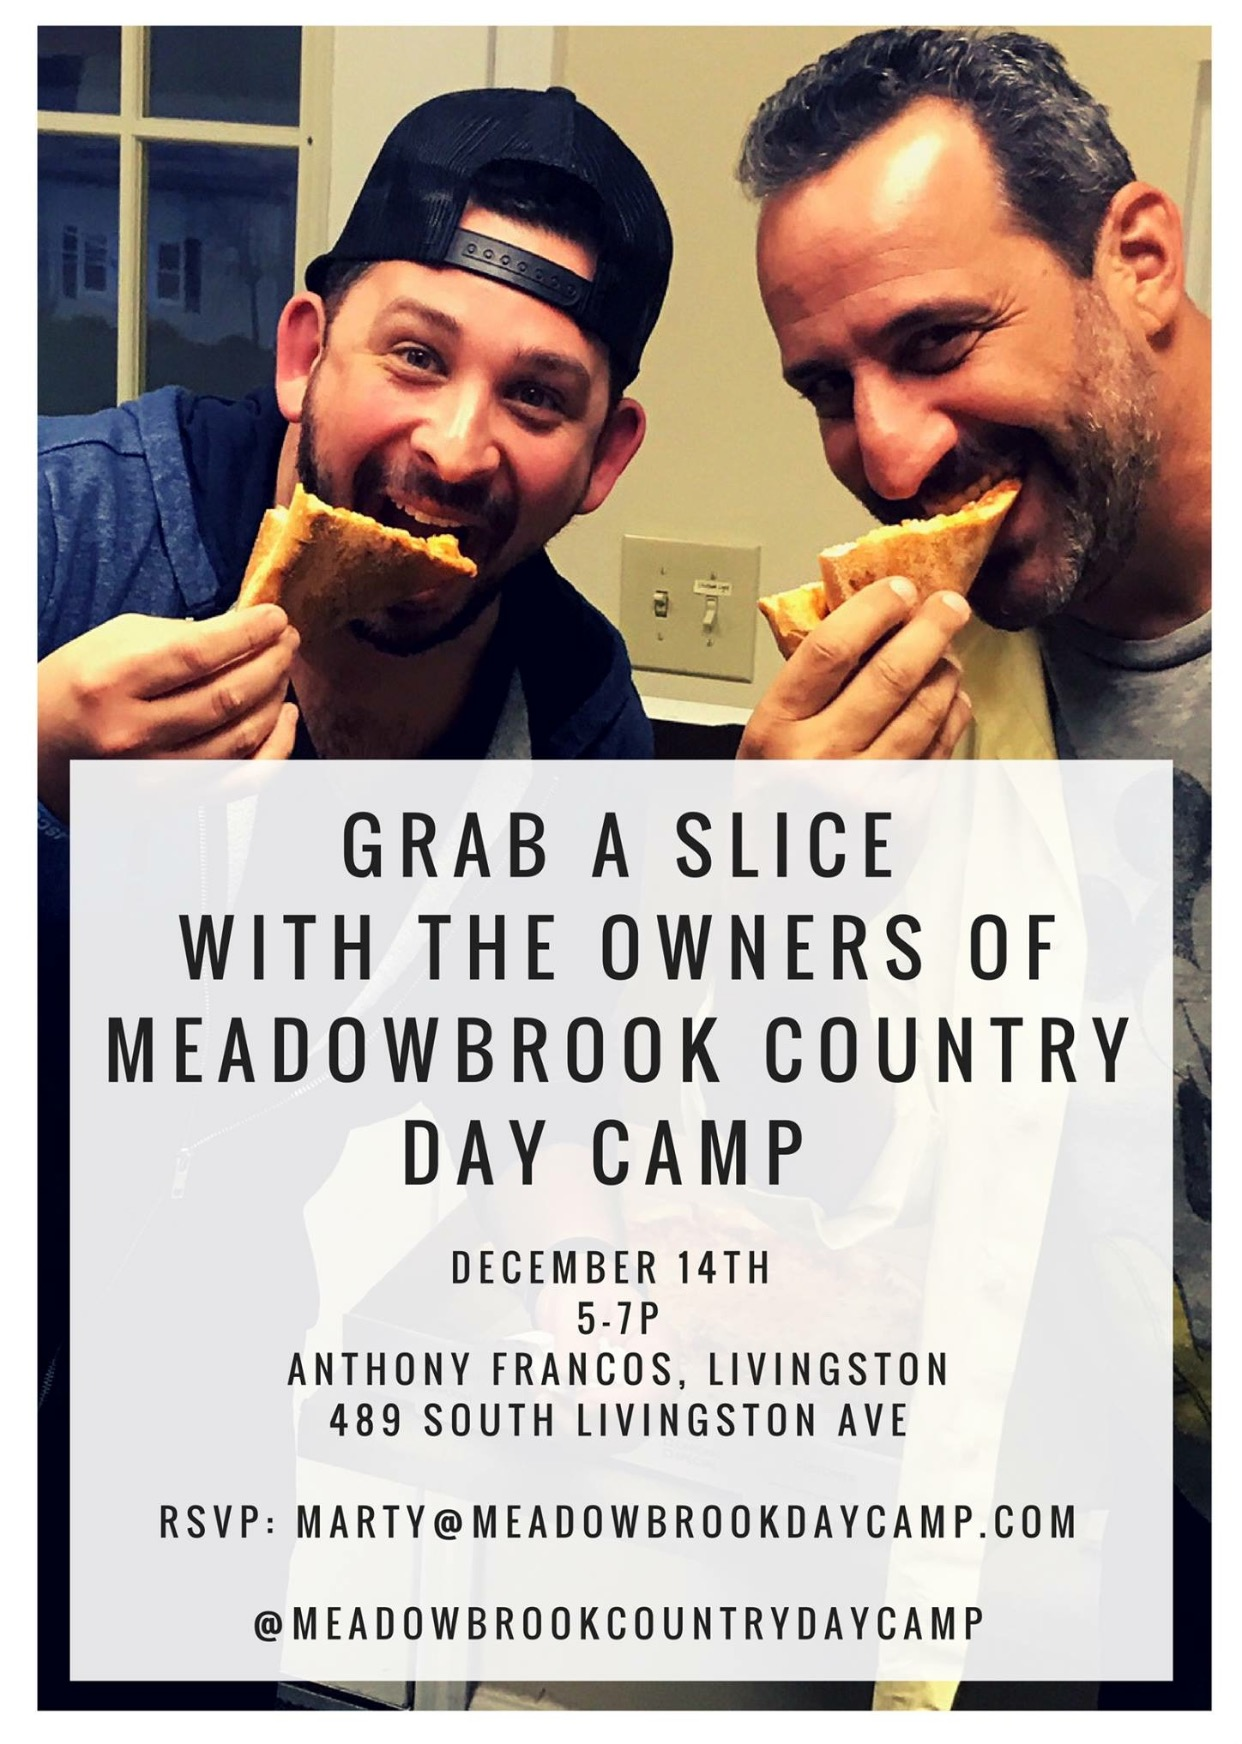 Meadowbrook County Day Camp Launch Nj Pizza Road Tour